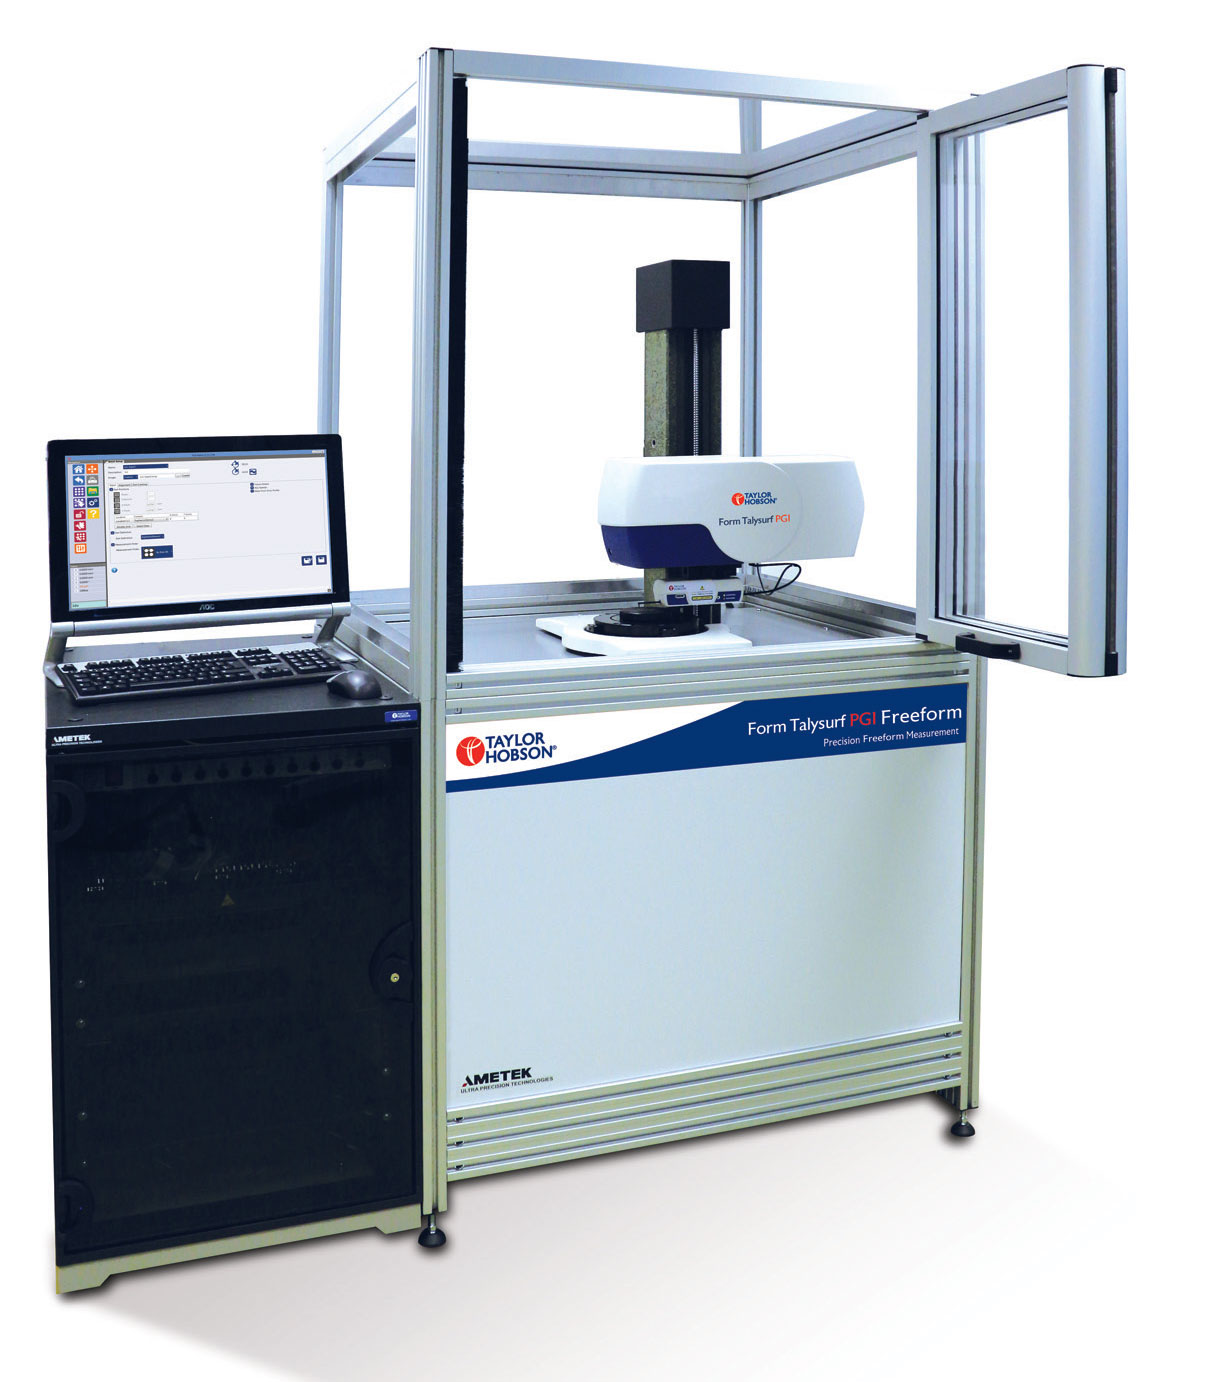 PGI Freeform high-resolution metrology instrument/profilometer for accurate measurement of freeform optics surface and form analysis